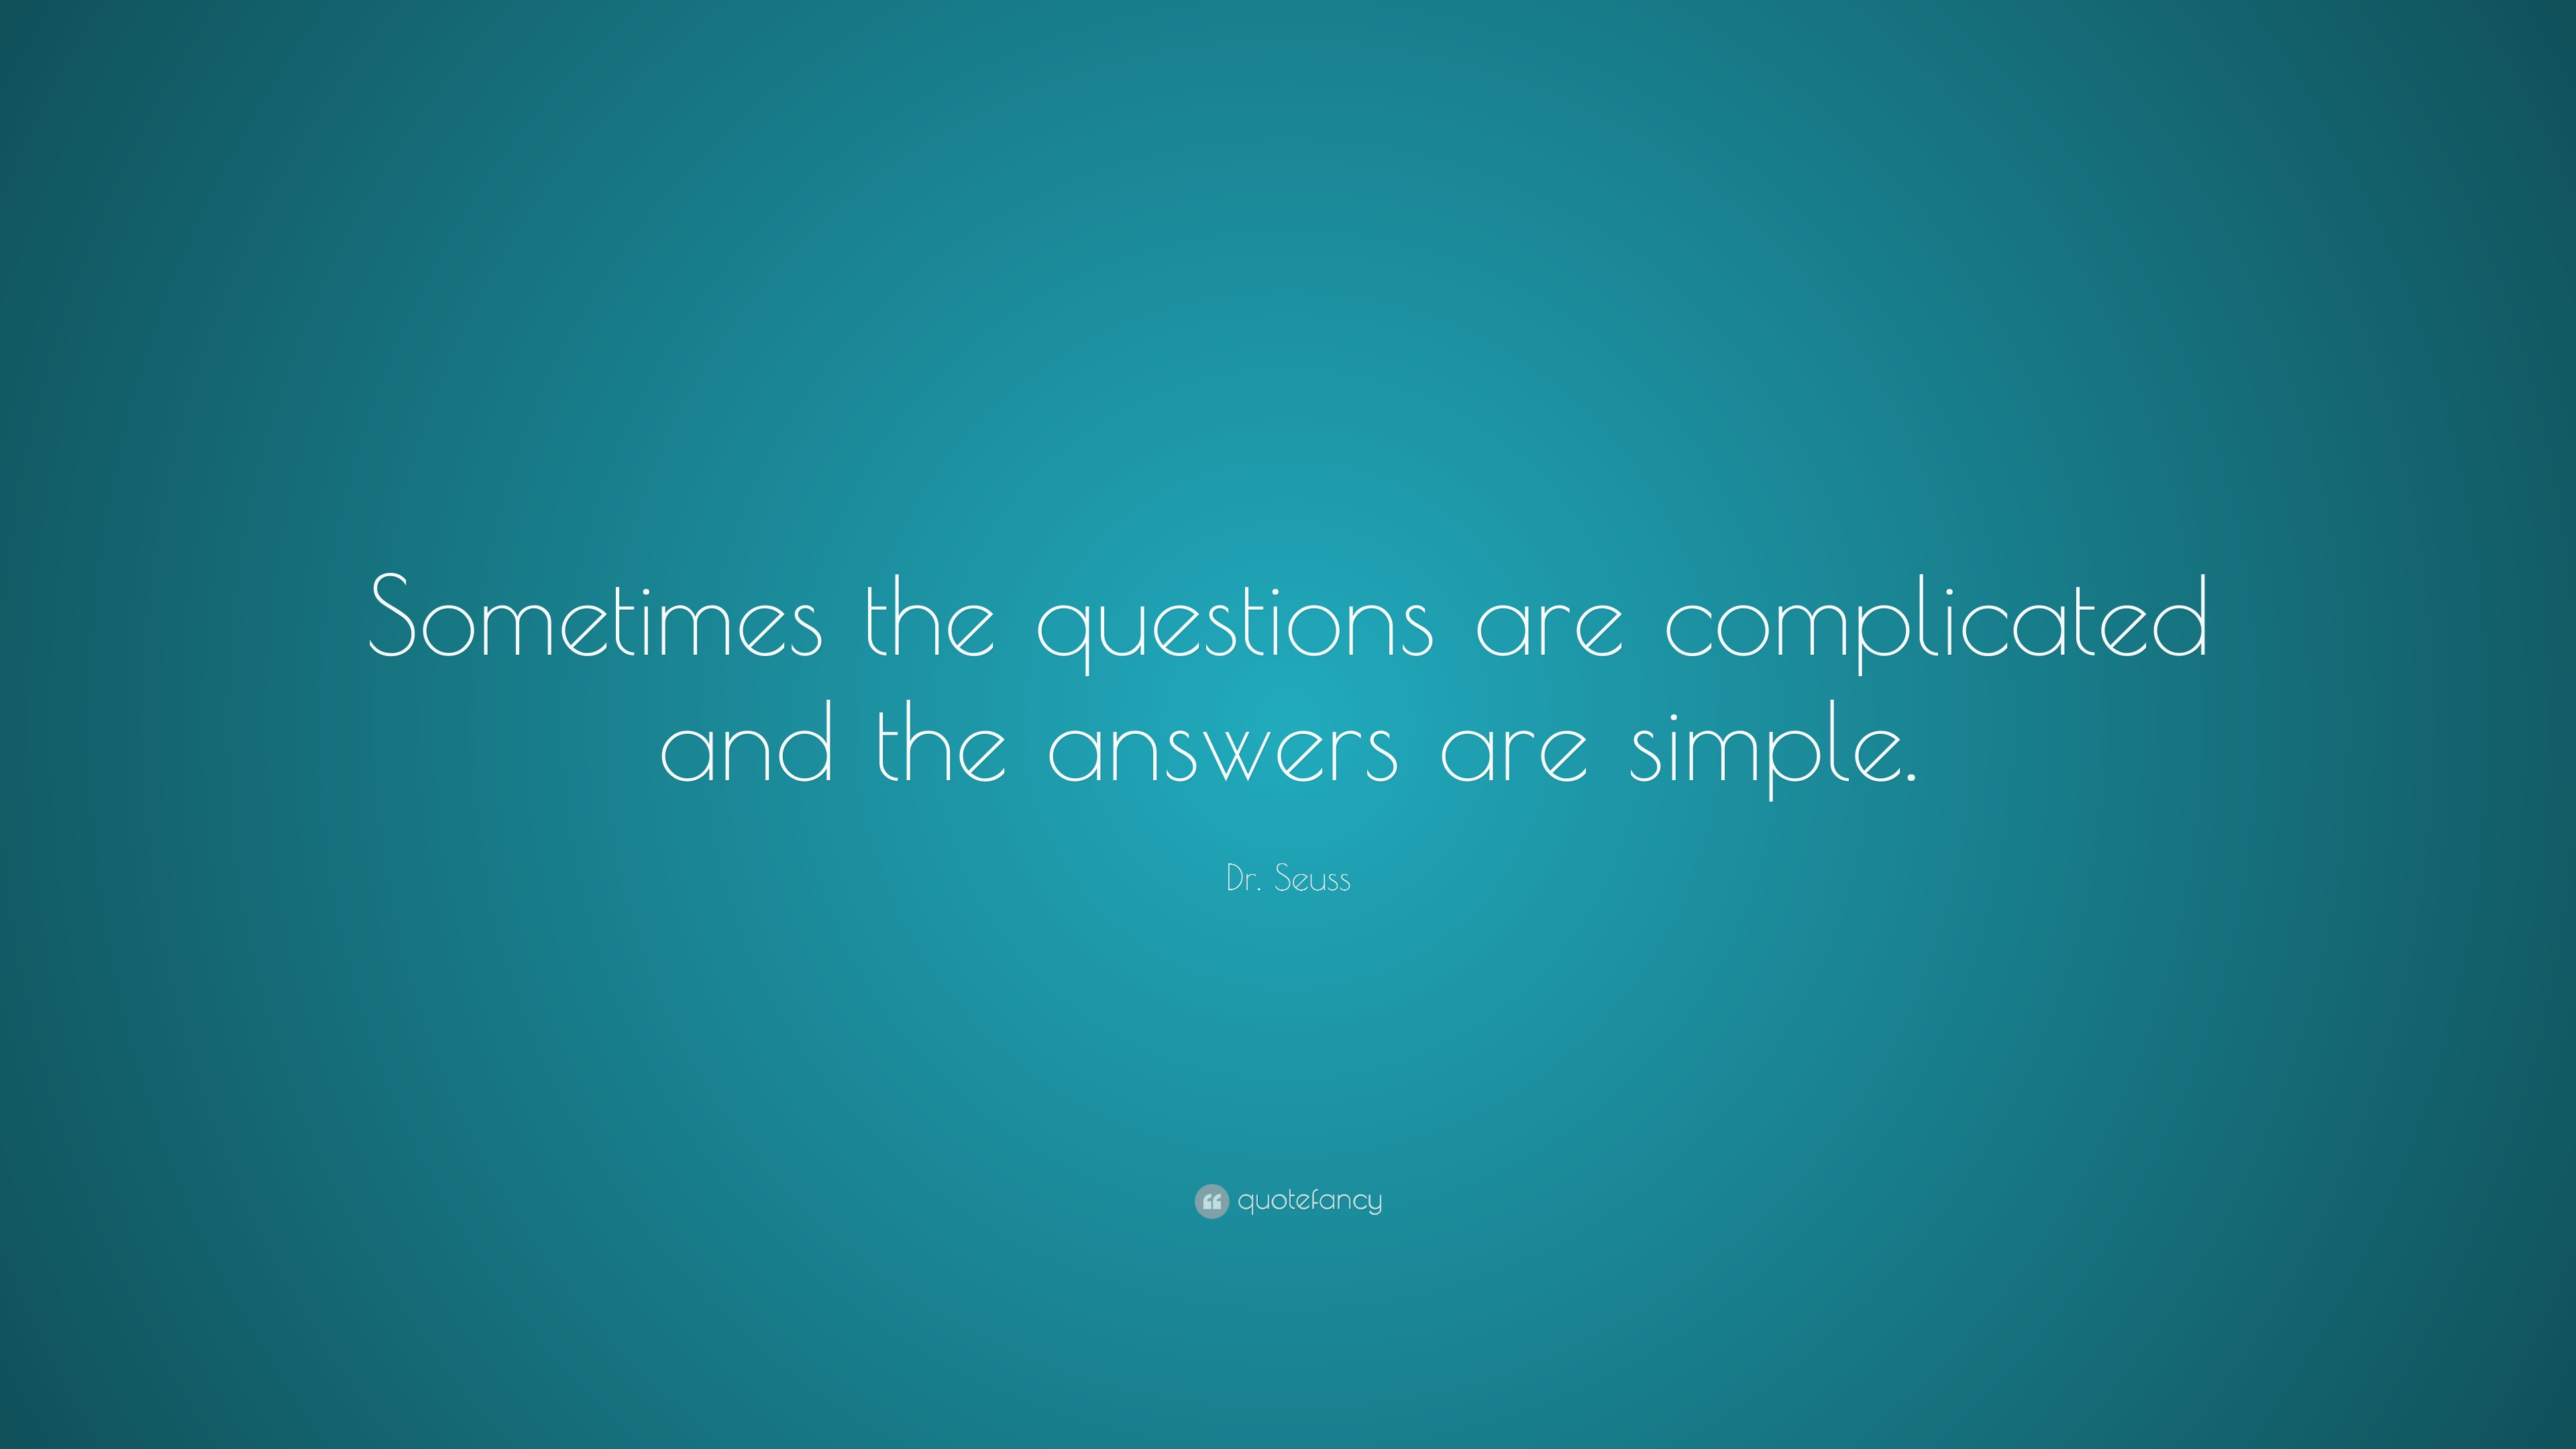 Dr  Seuss Quote     Sometimes the questions are complicated and the     Dr  Seuss Quote     Sometimes the questions are complicated and the answers  are simple